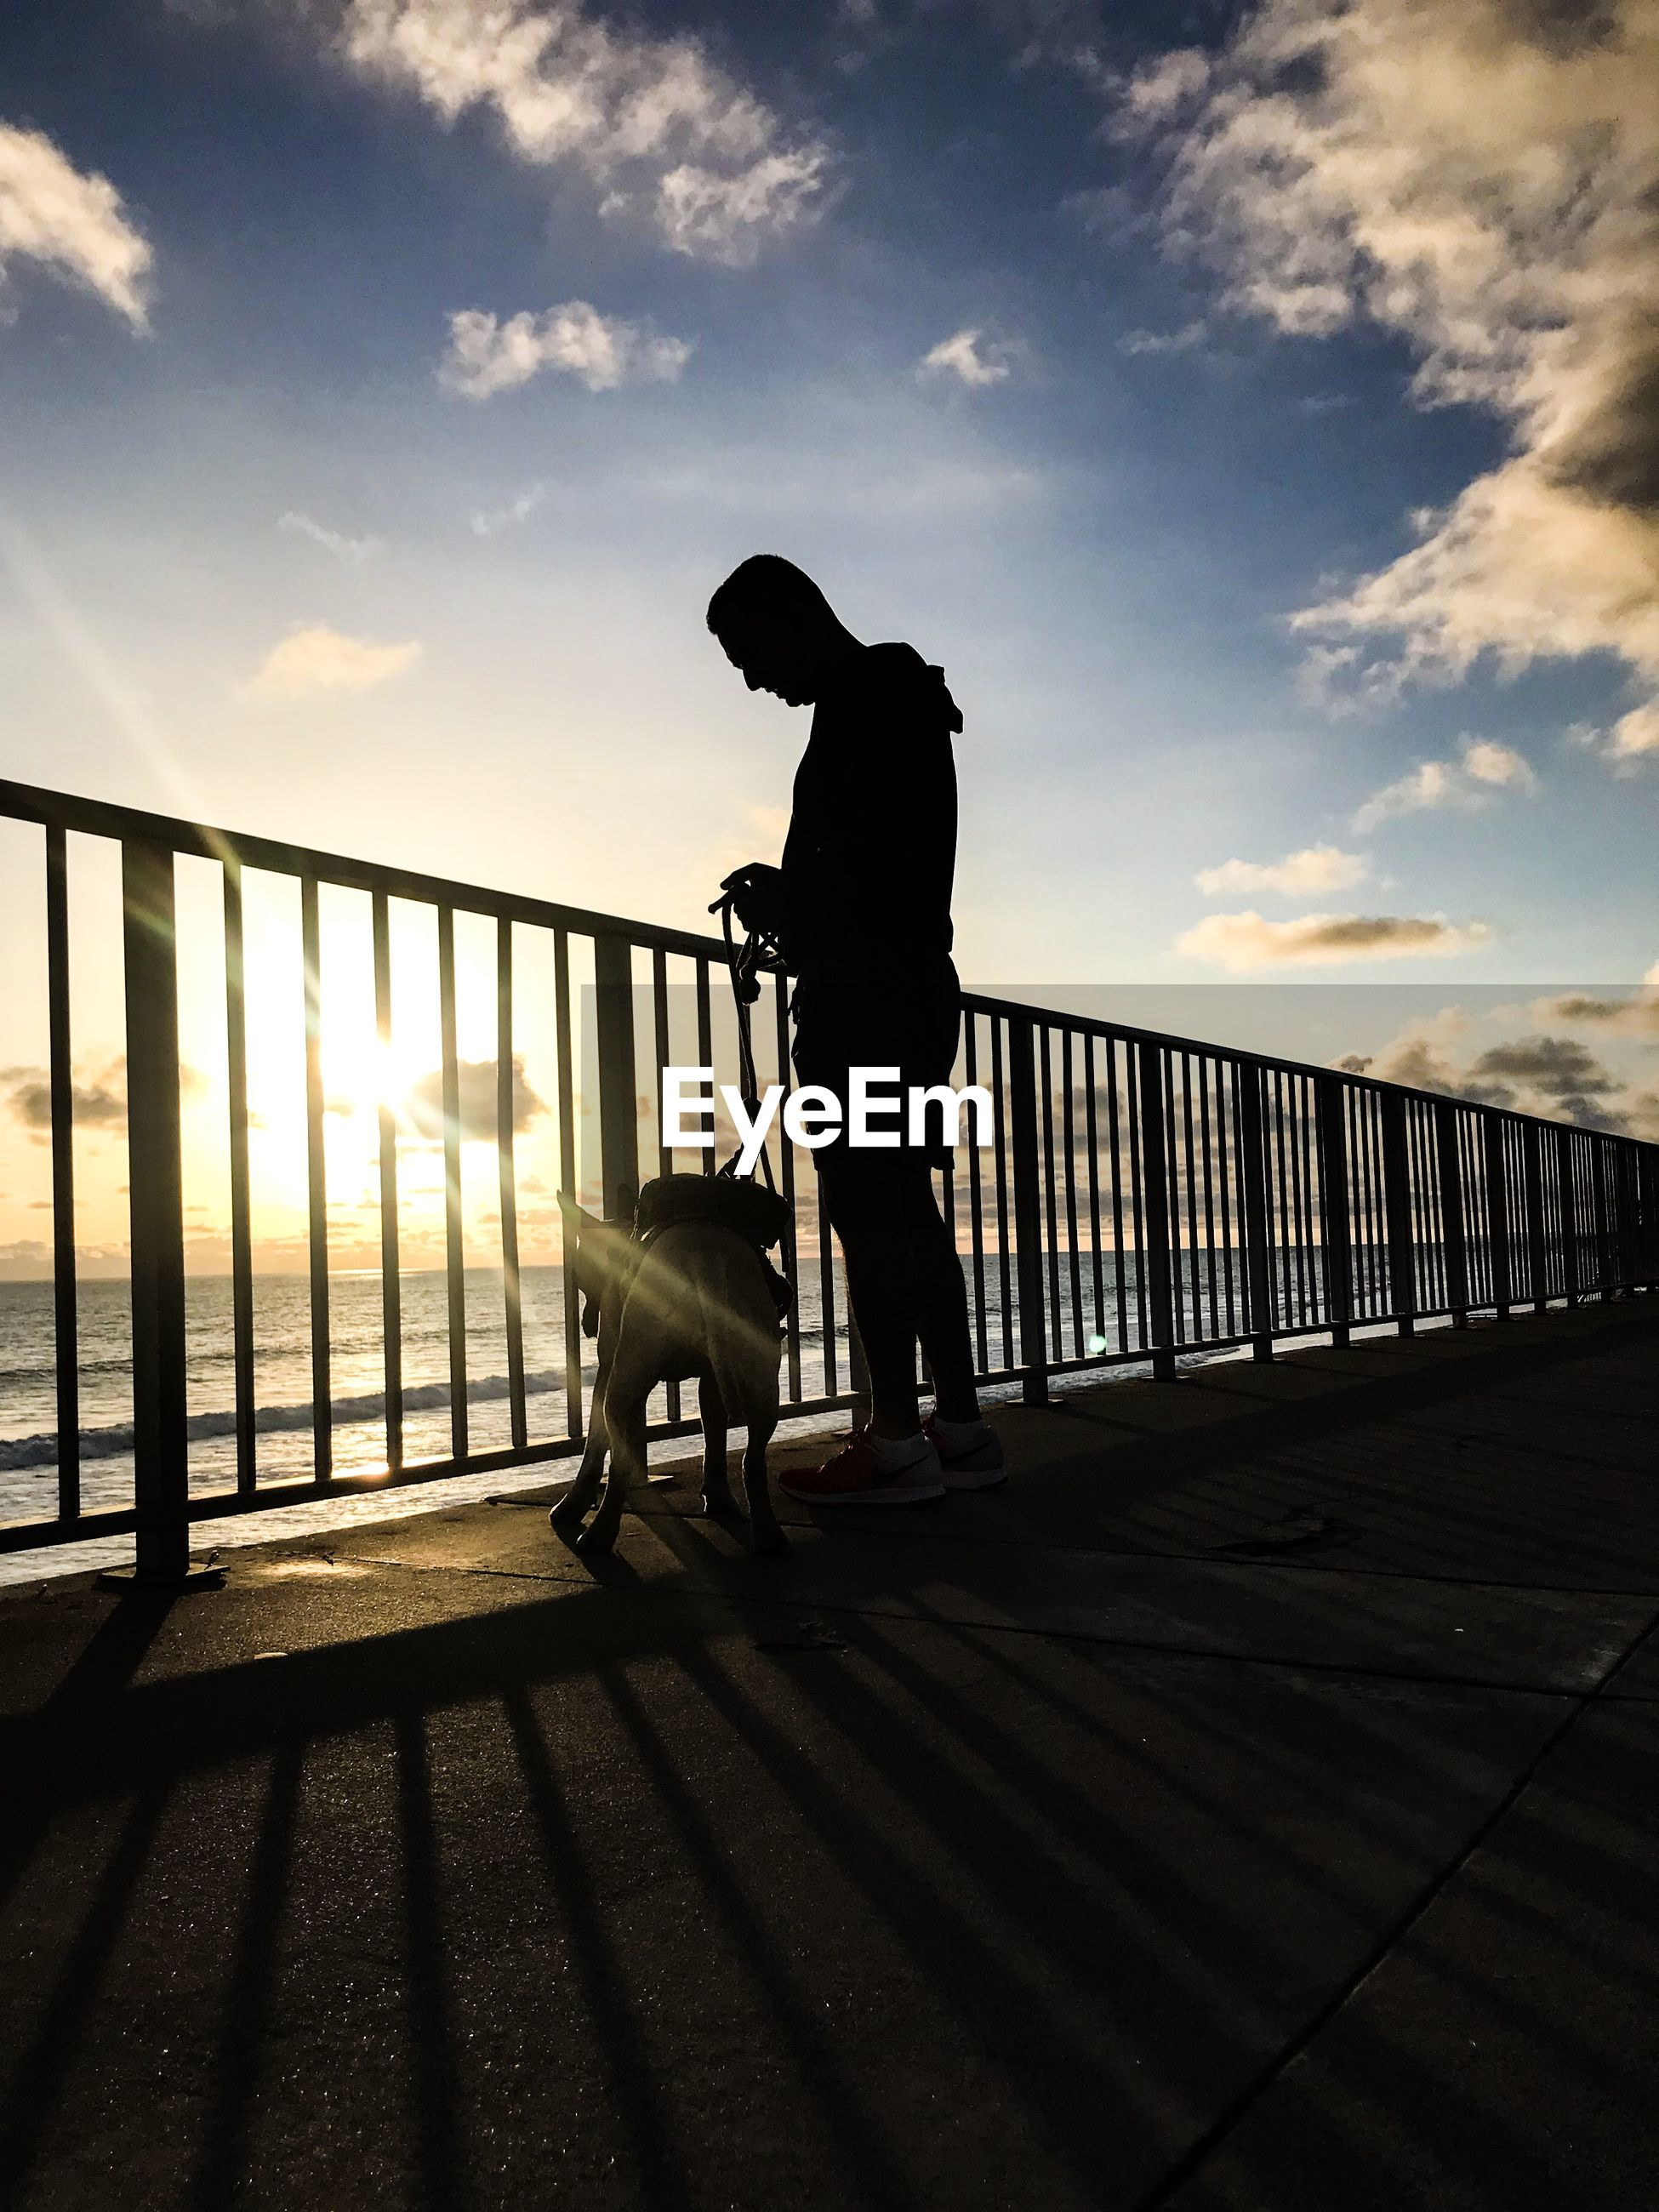 Silhouette man with dog standing on footpath against sky at sunset